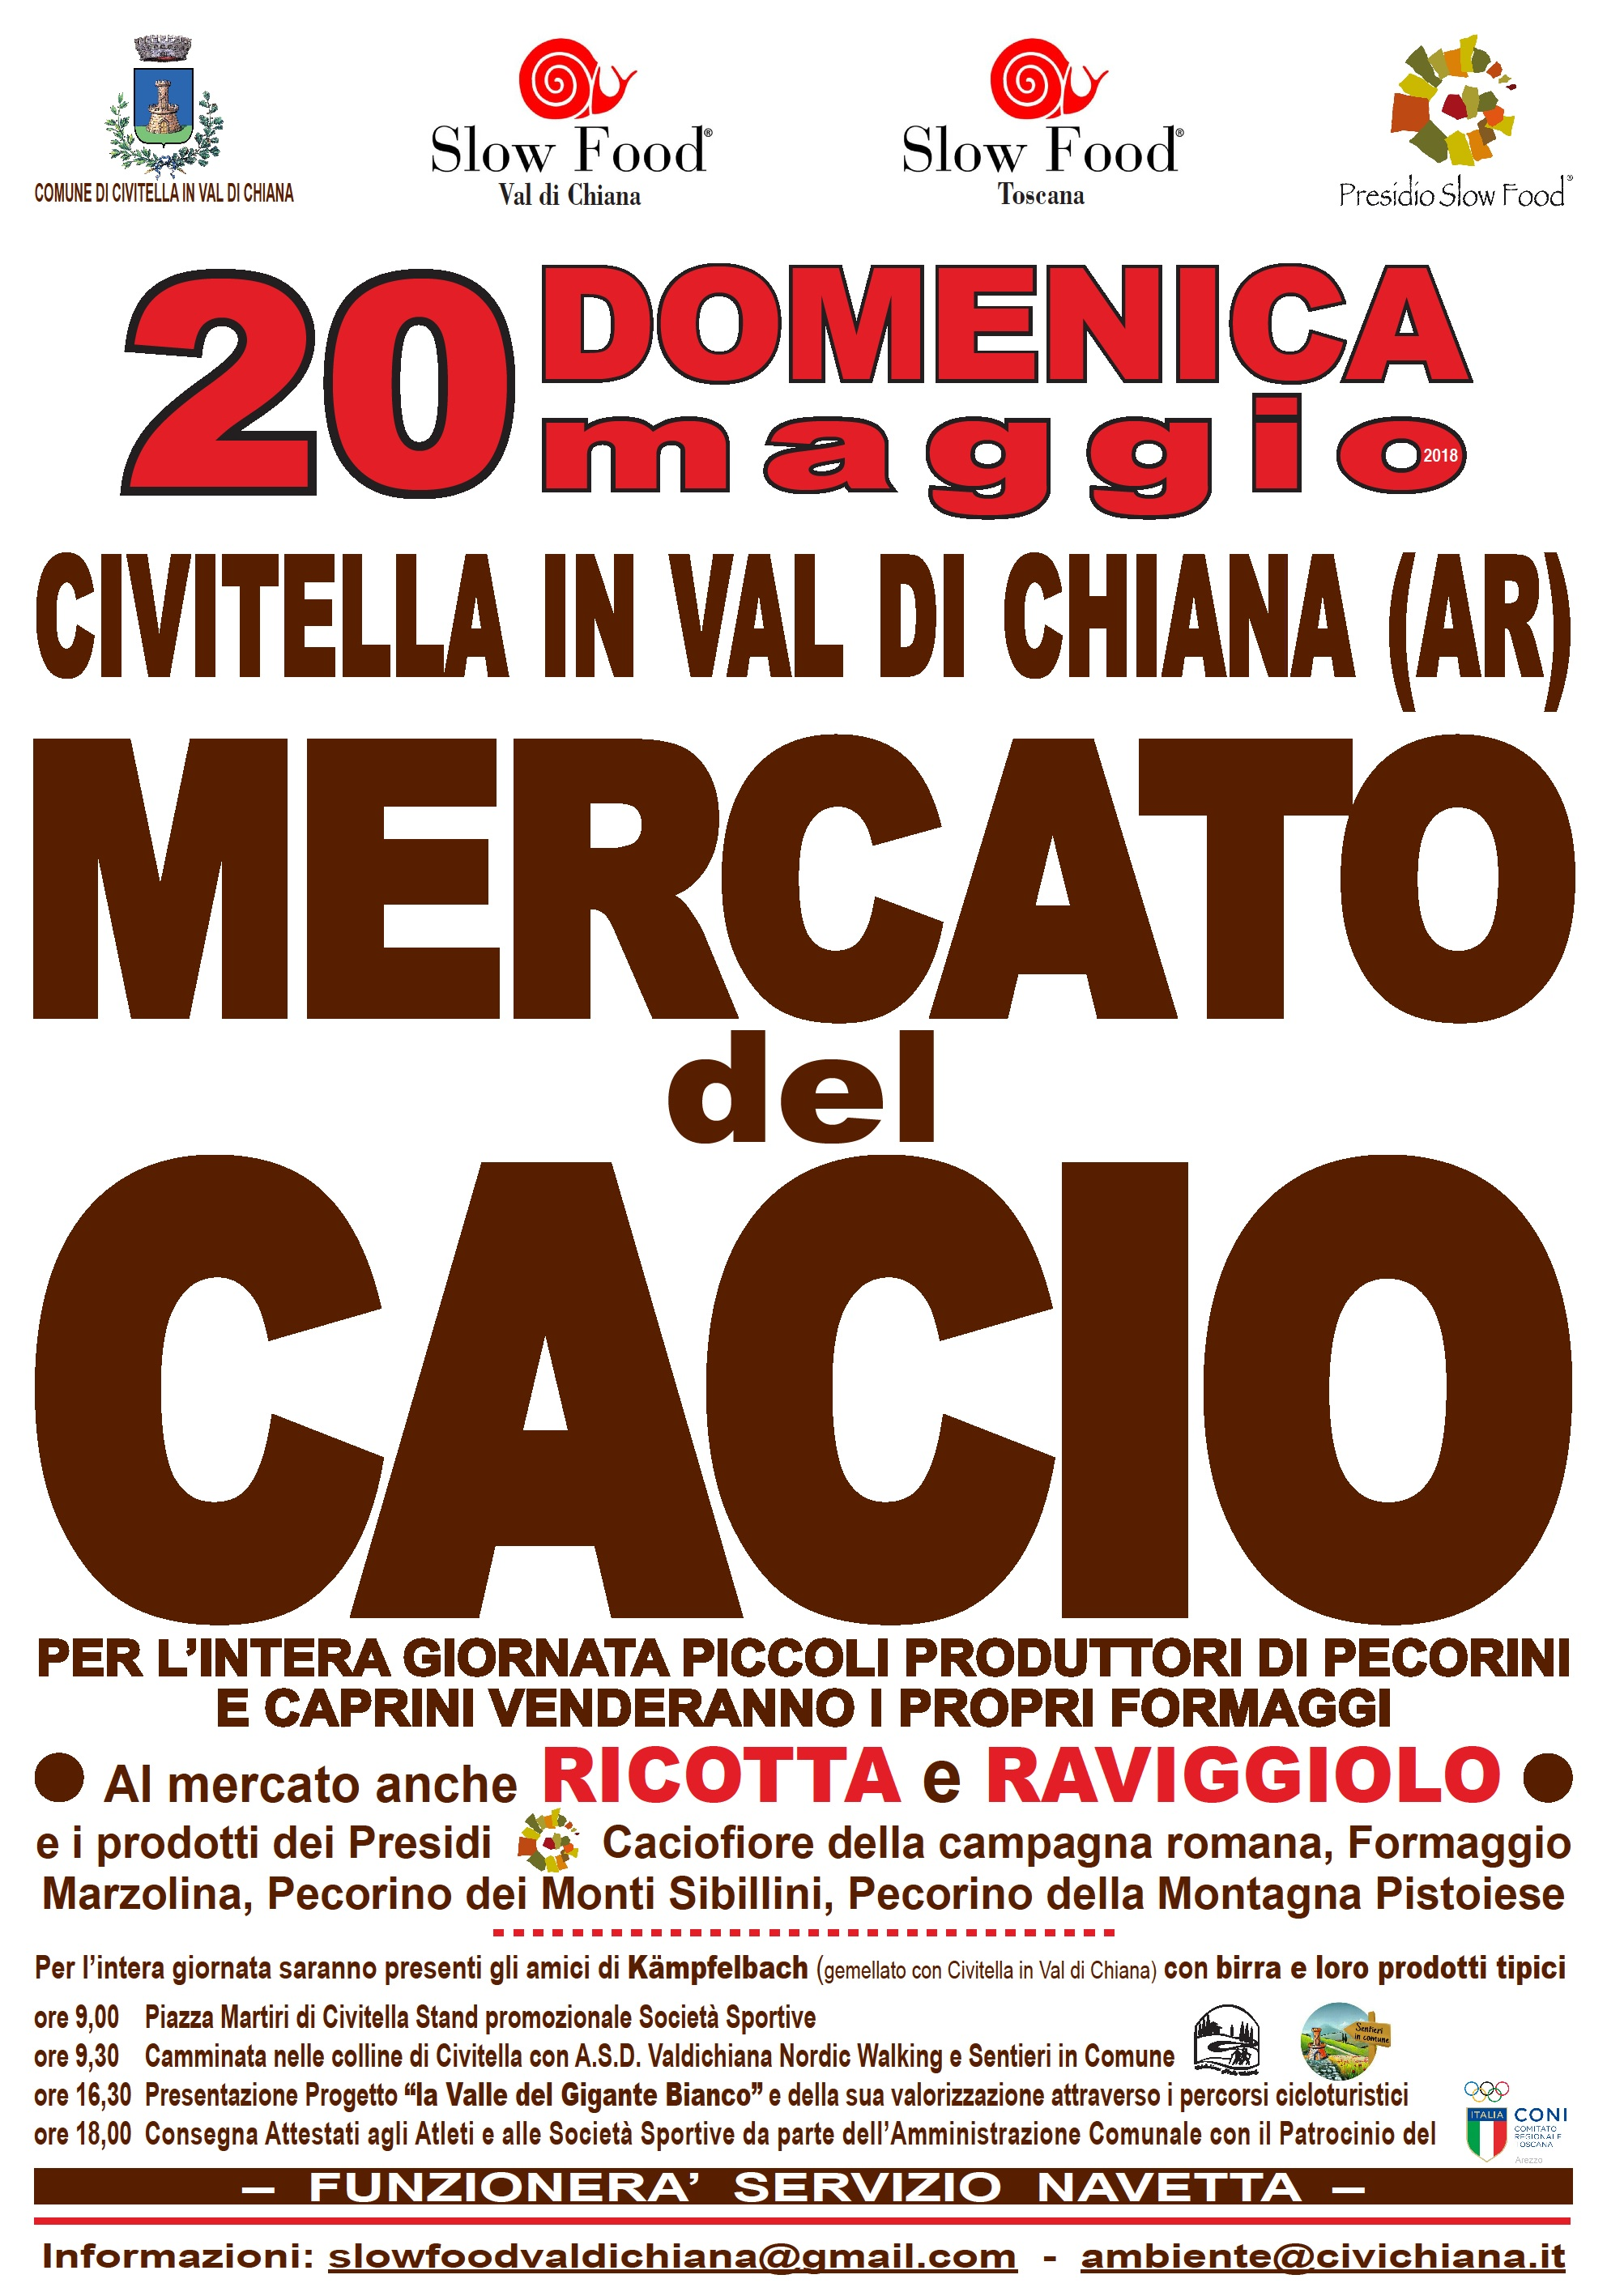 cacio civitella